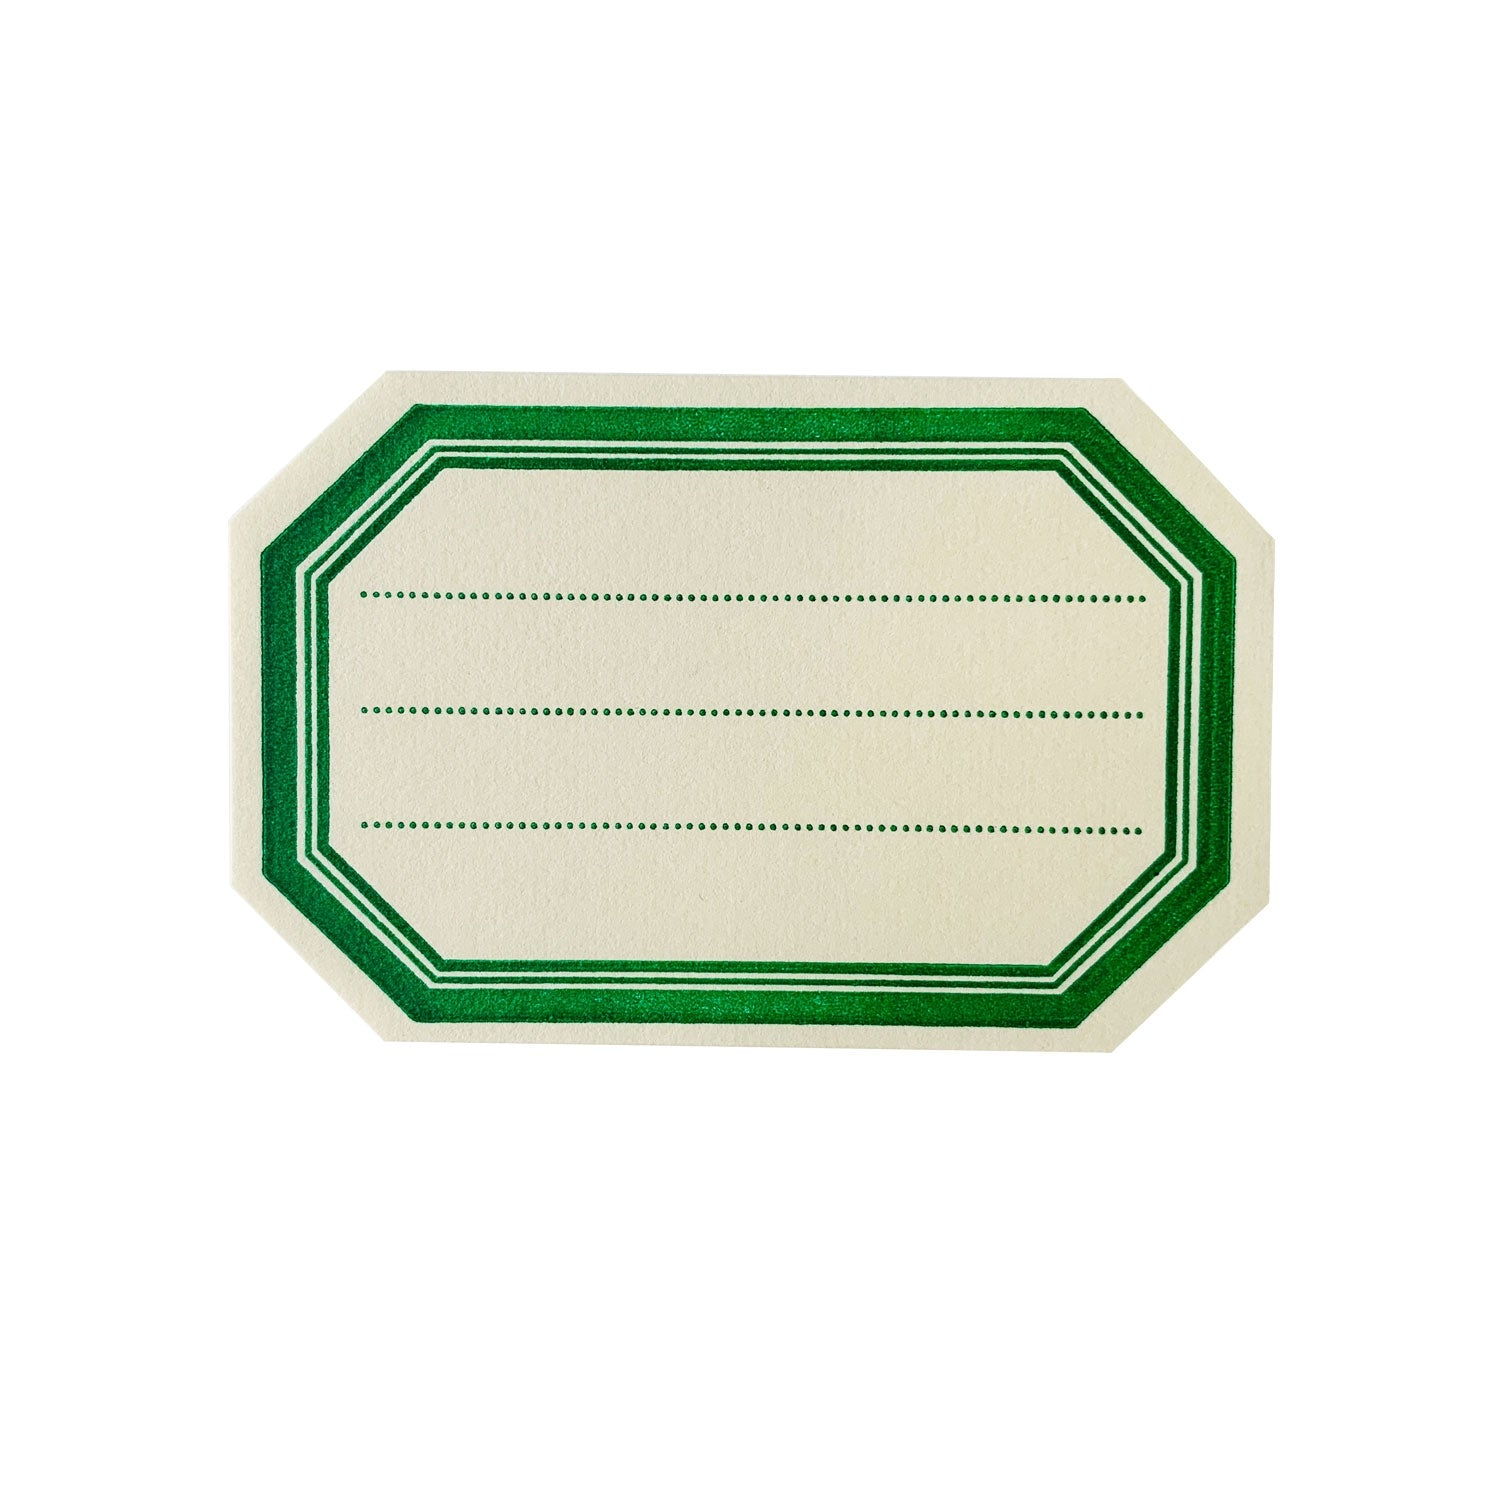 Green Border Octagonal  Letterpress Bookplates - Set of 8